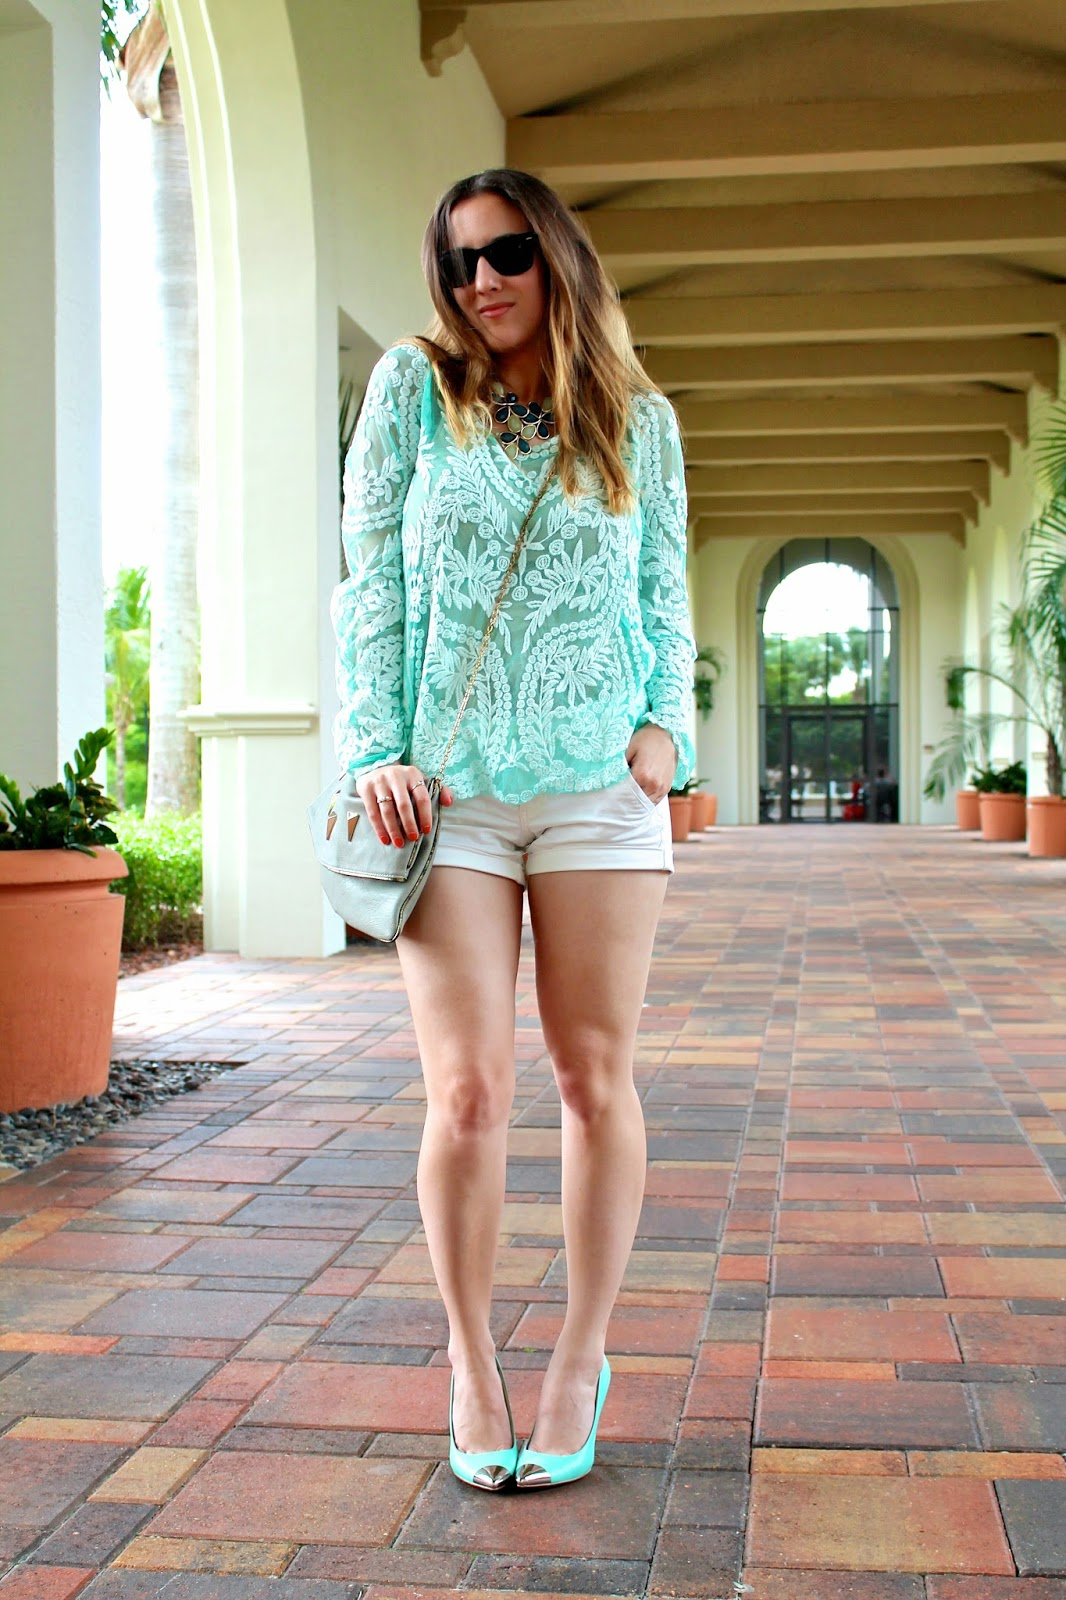 The Flaunt Shop, American Eagle, Forever 21, Chinese Laundry, Piperlime, LF Stores, street style, Miami fashion blogger, Ray-Ban, wayfarer, statement necklace, mint, discount